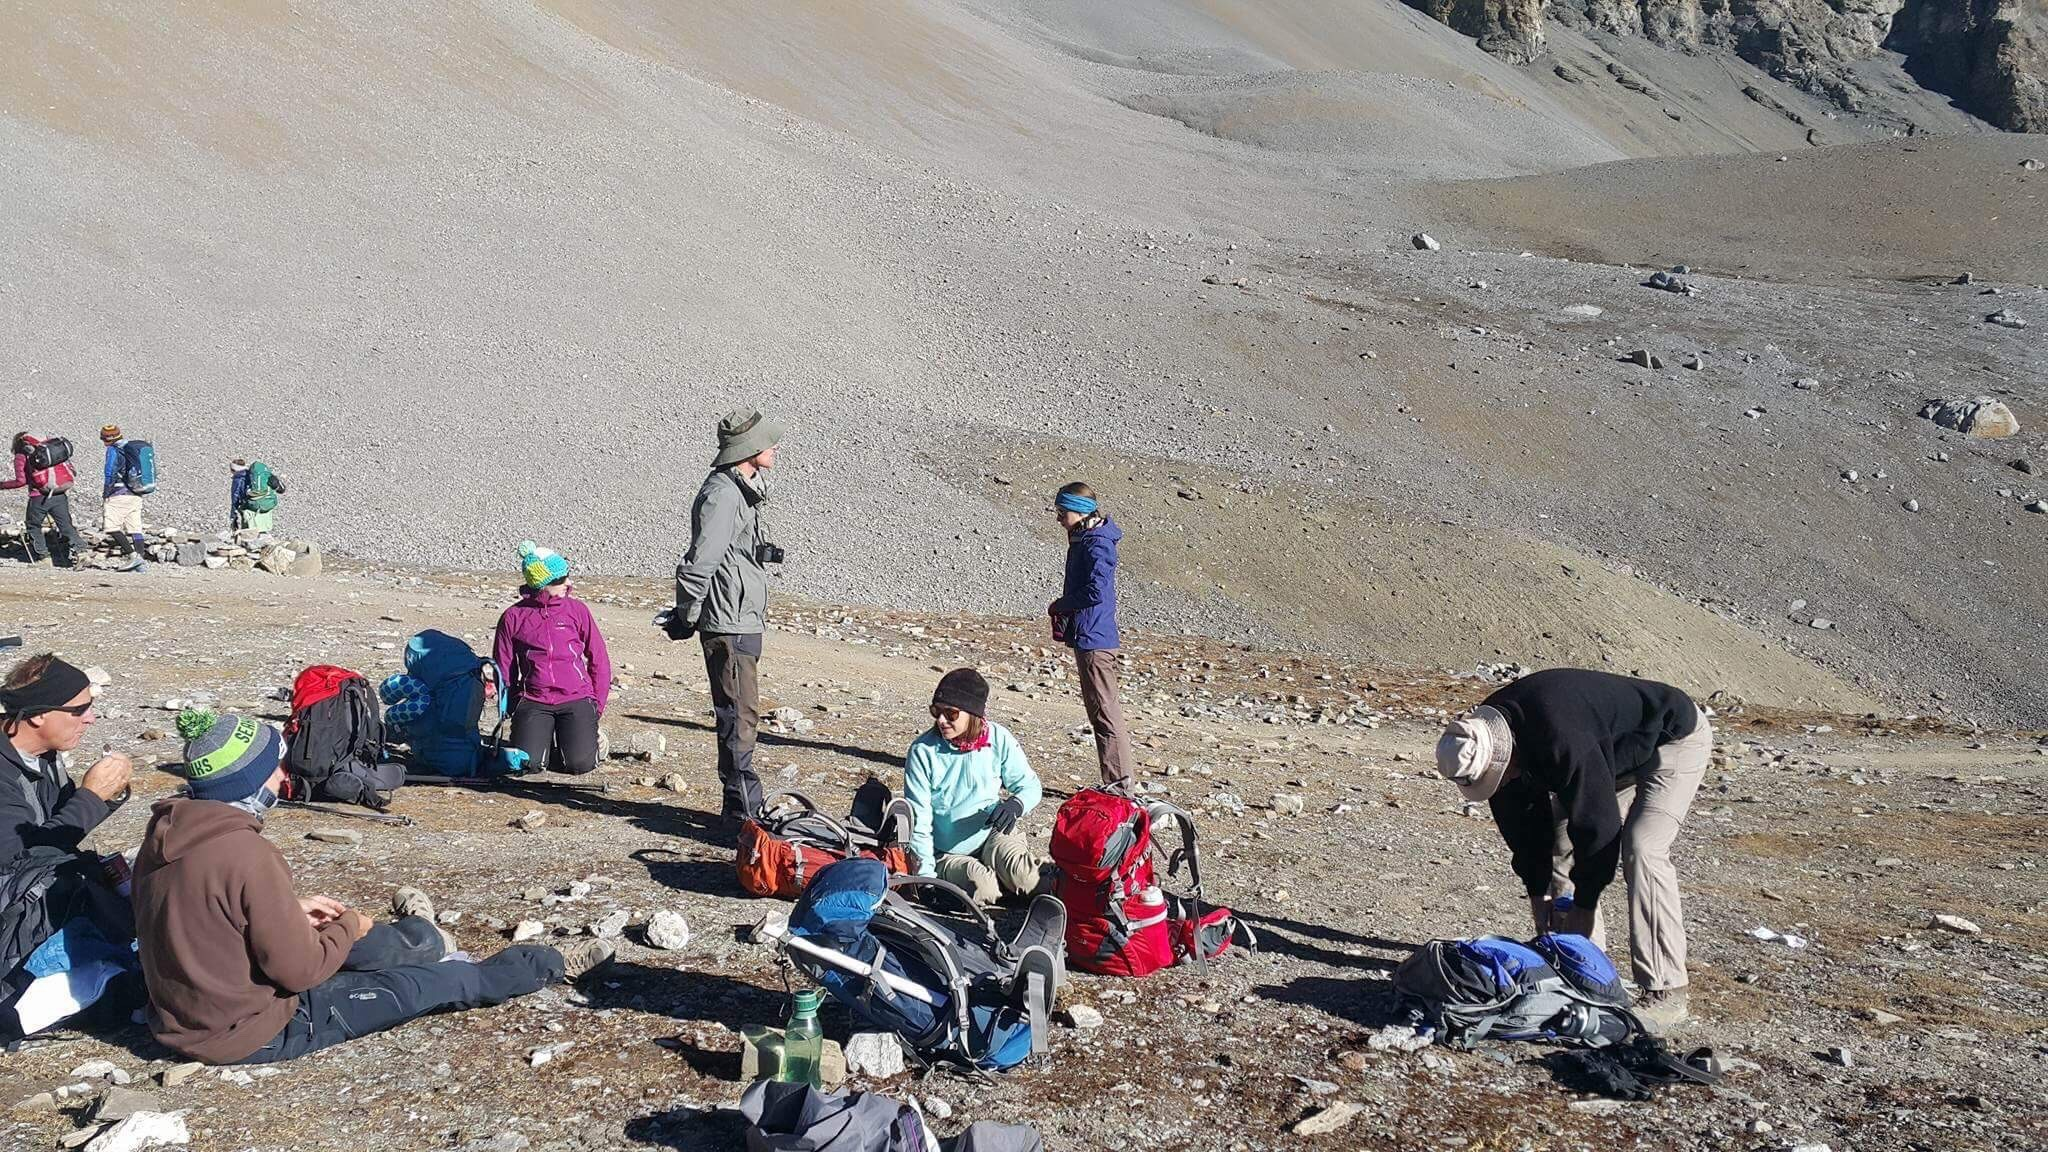 The area near the pass resembles the high rocky deserts of Tibet.